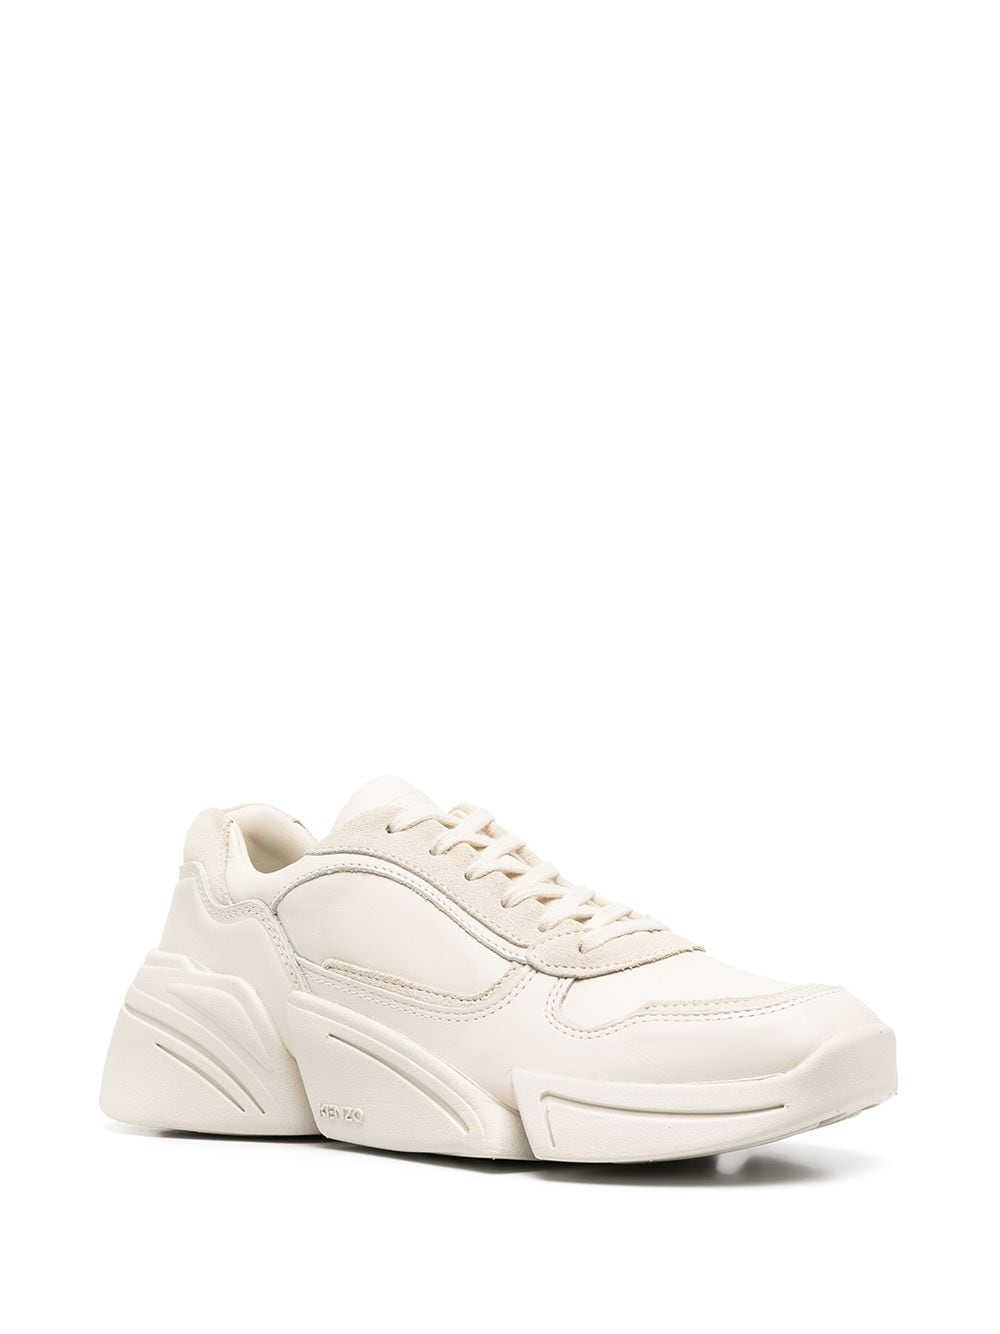 KENZO WOMEN Kross Low Top Sneakers Beige